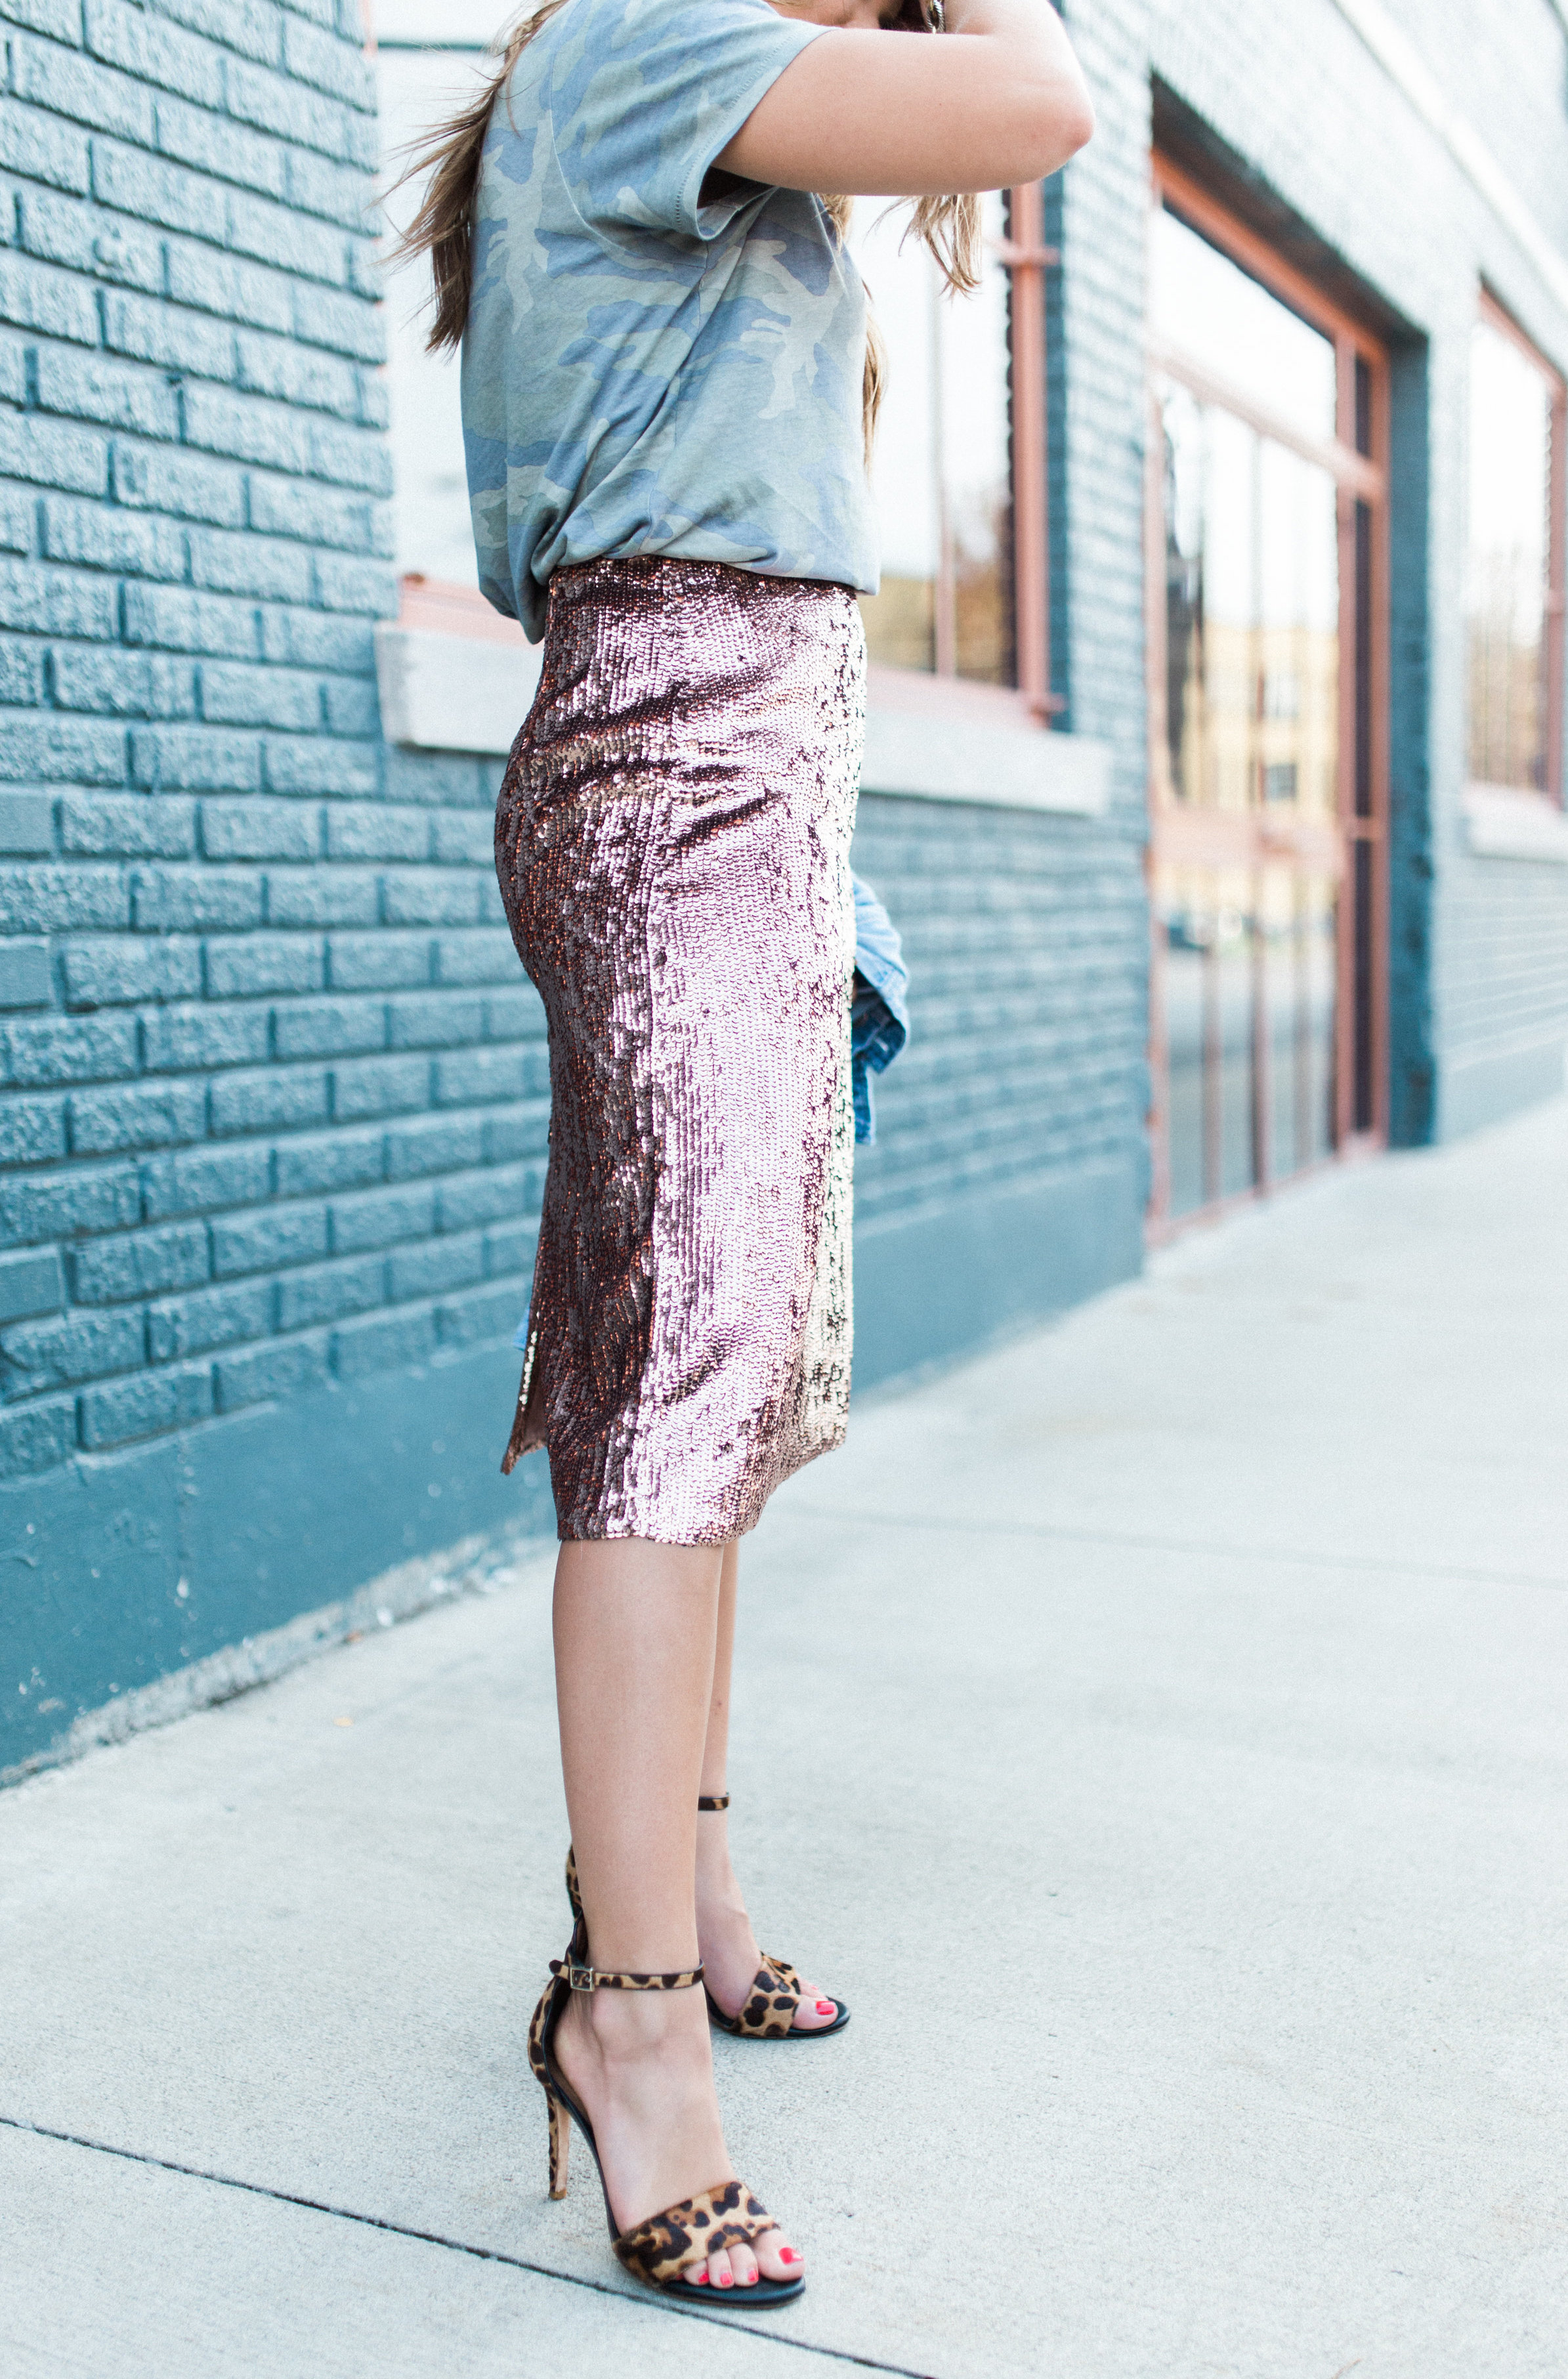 How to dress down a sequin skirt / sequin skirt for fall